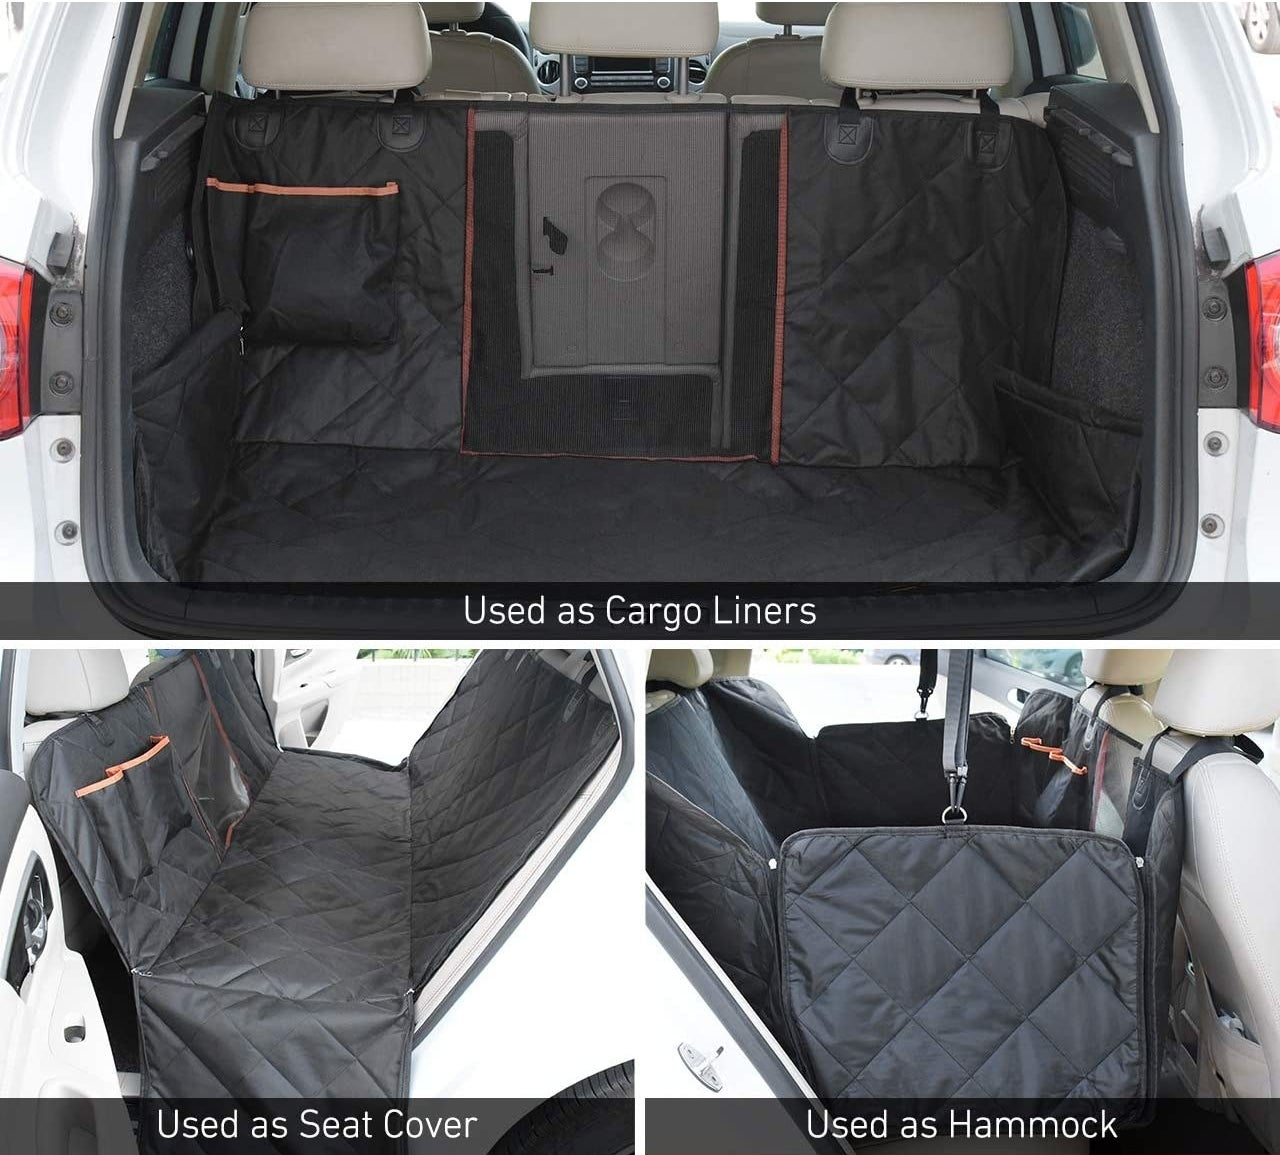 The dog seat cover as a seat cover, hammock, and trunk cover